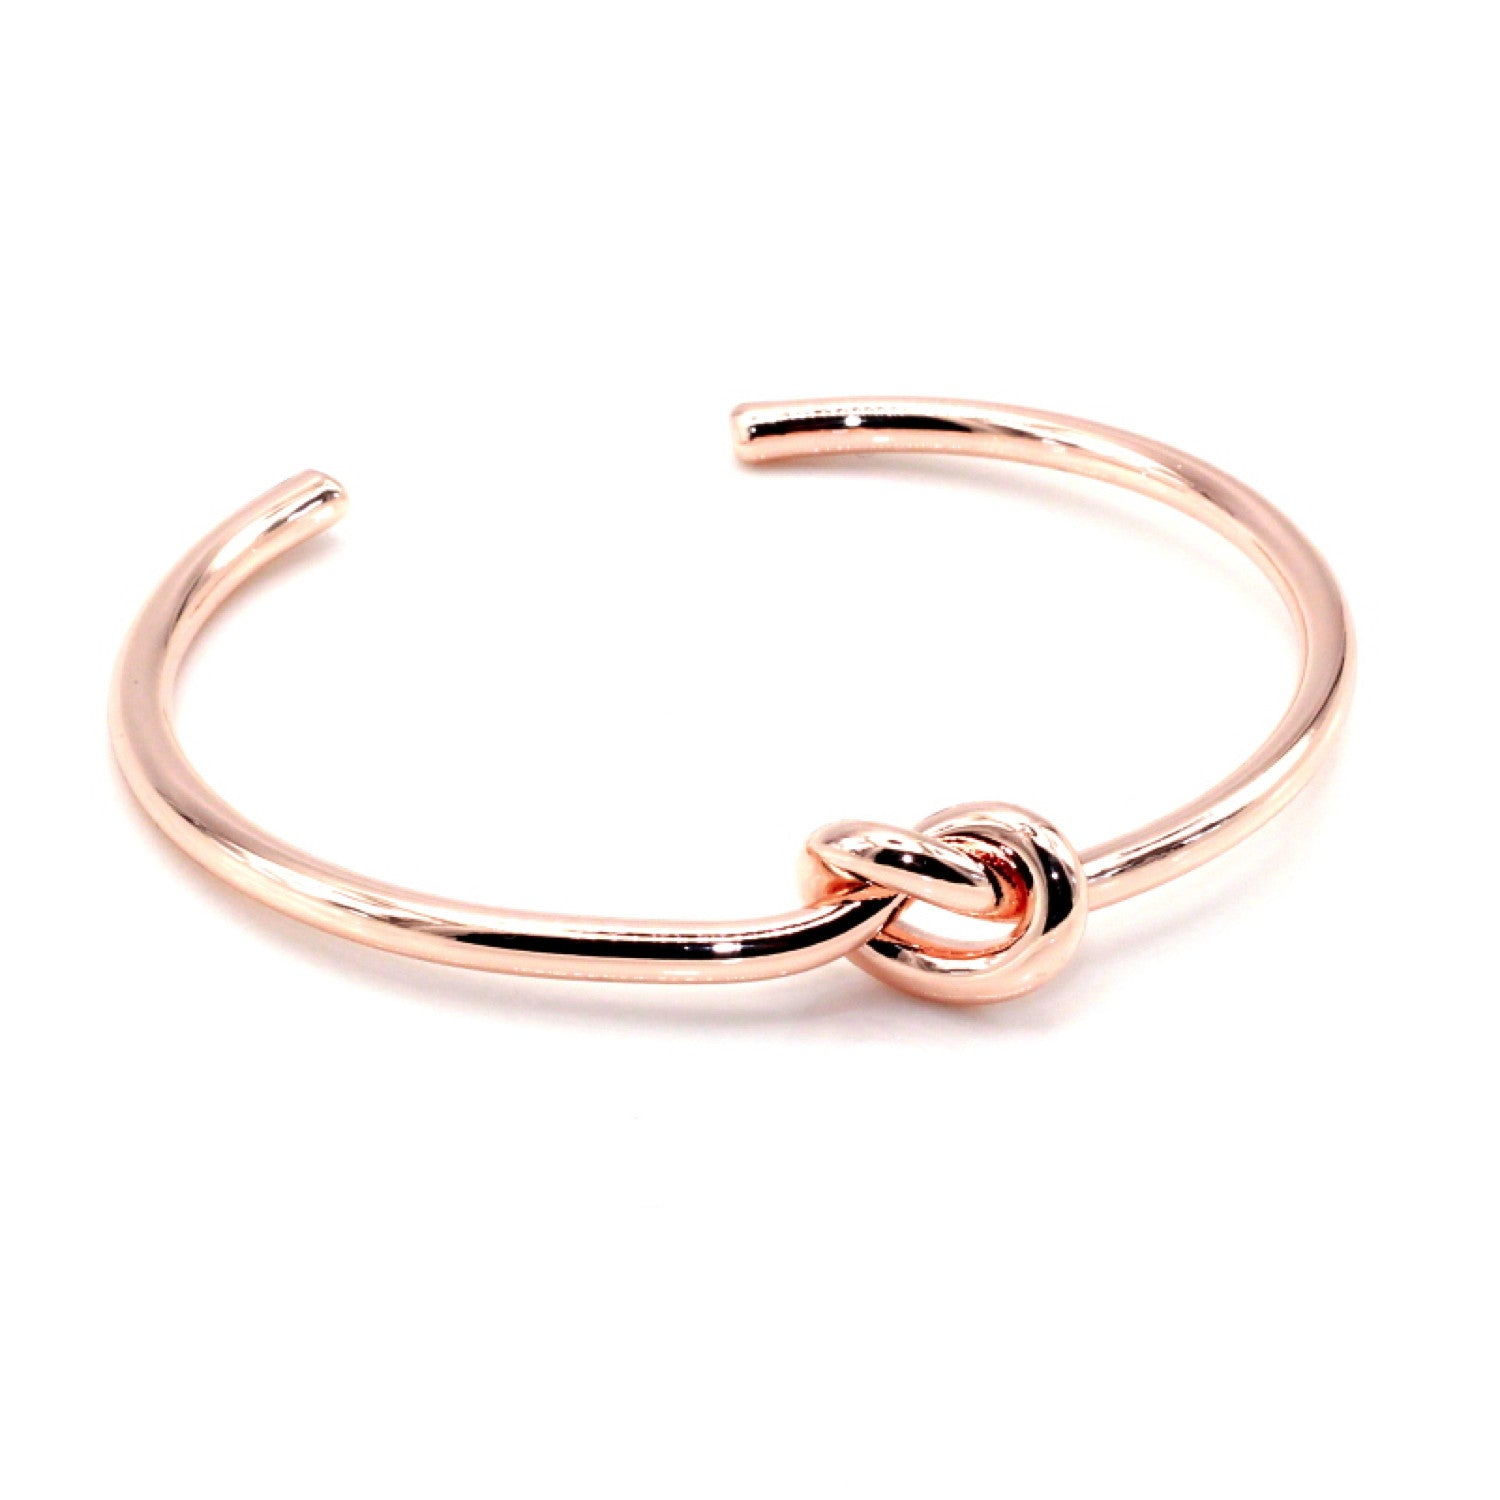 adjustable steel bangle findings unique bulk bracelet jewelry gold stainless bangles lot bracelets products expandable size